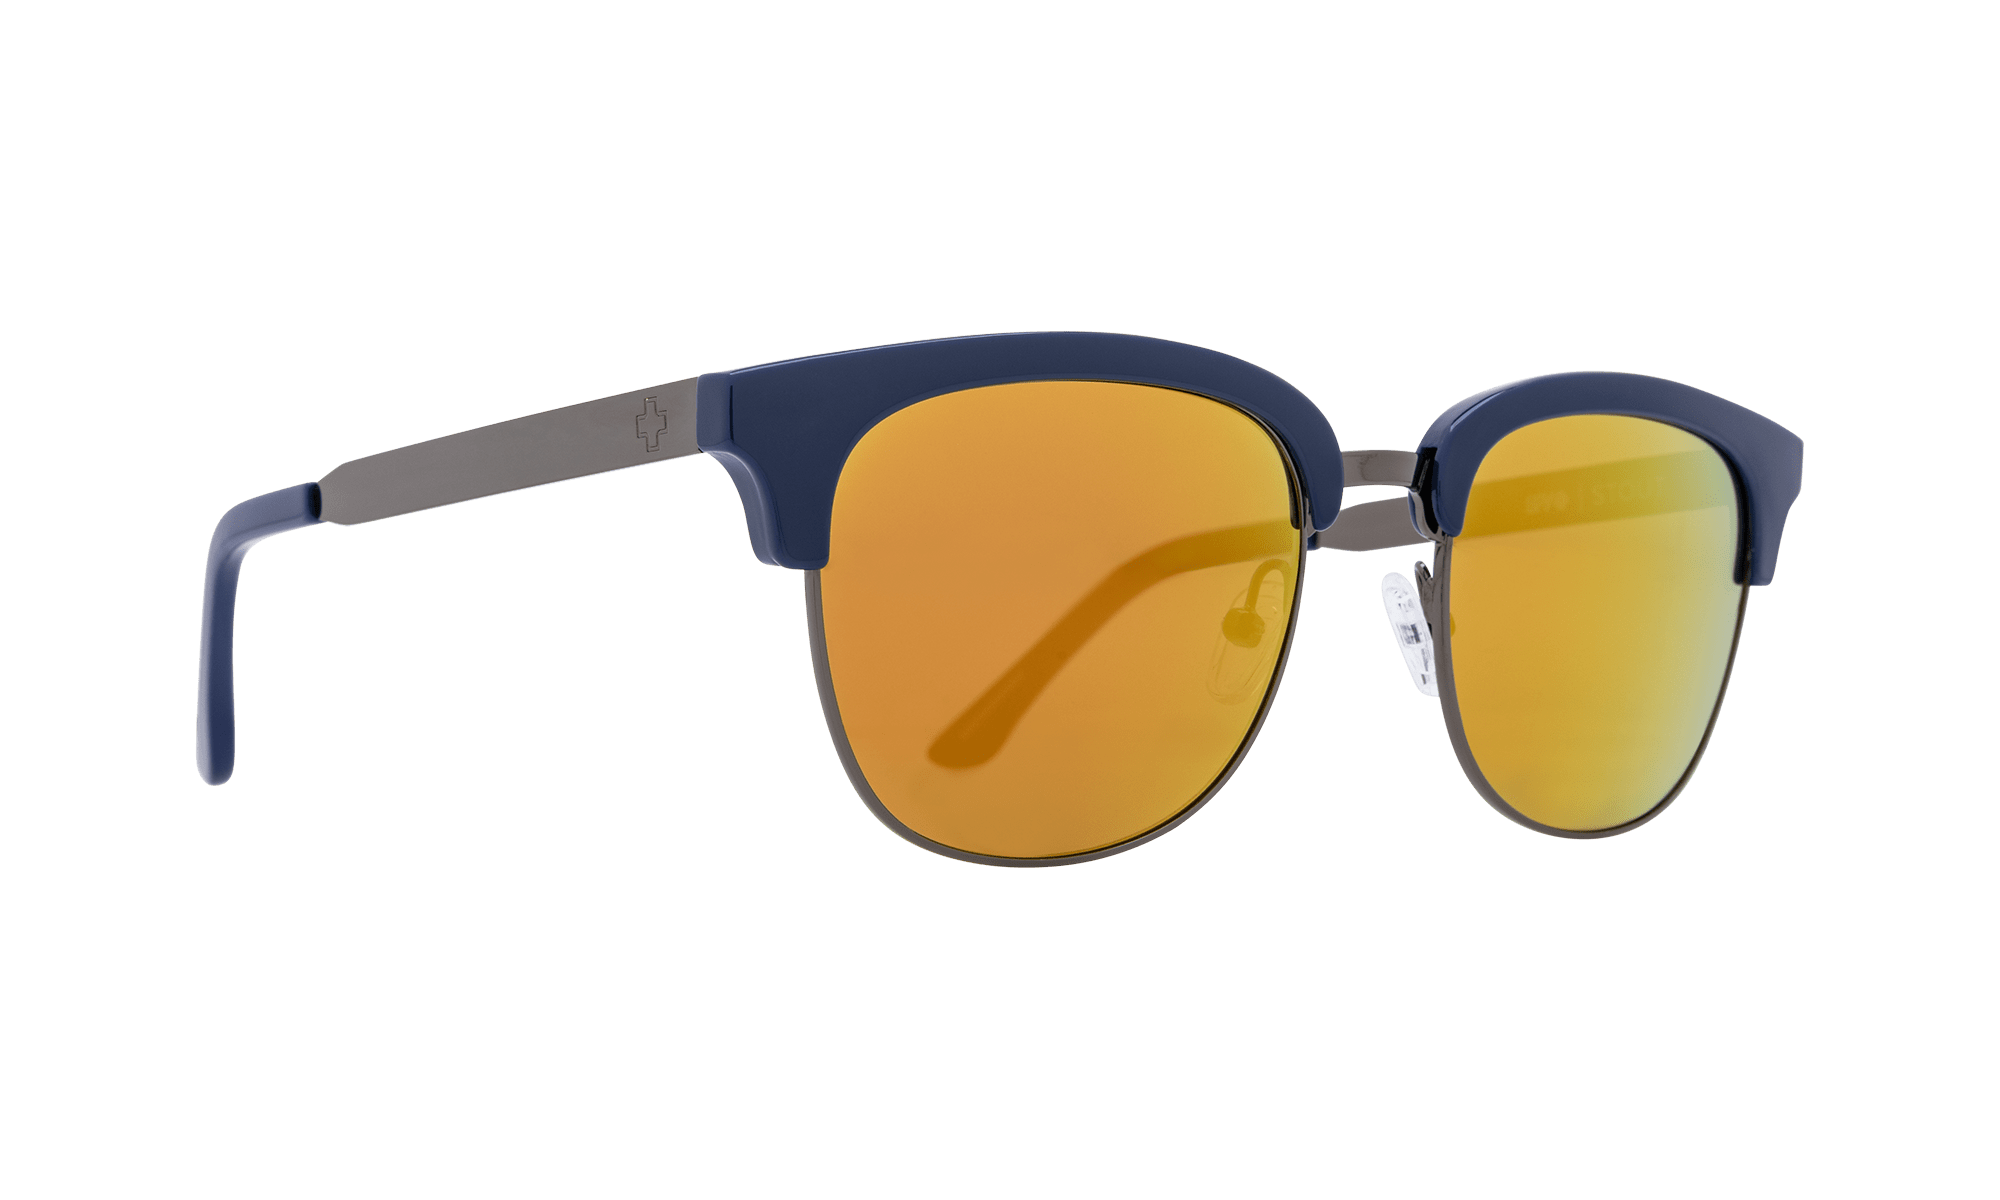 SPY stout  Sunglasses  Gray with Gold Mirror  51-21-147